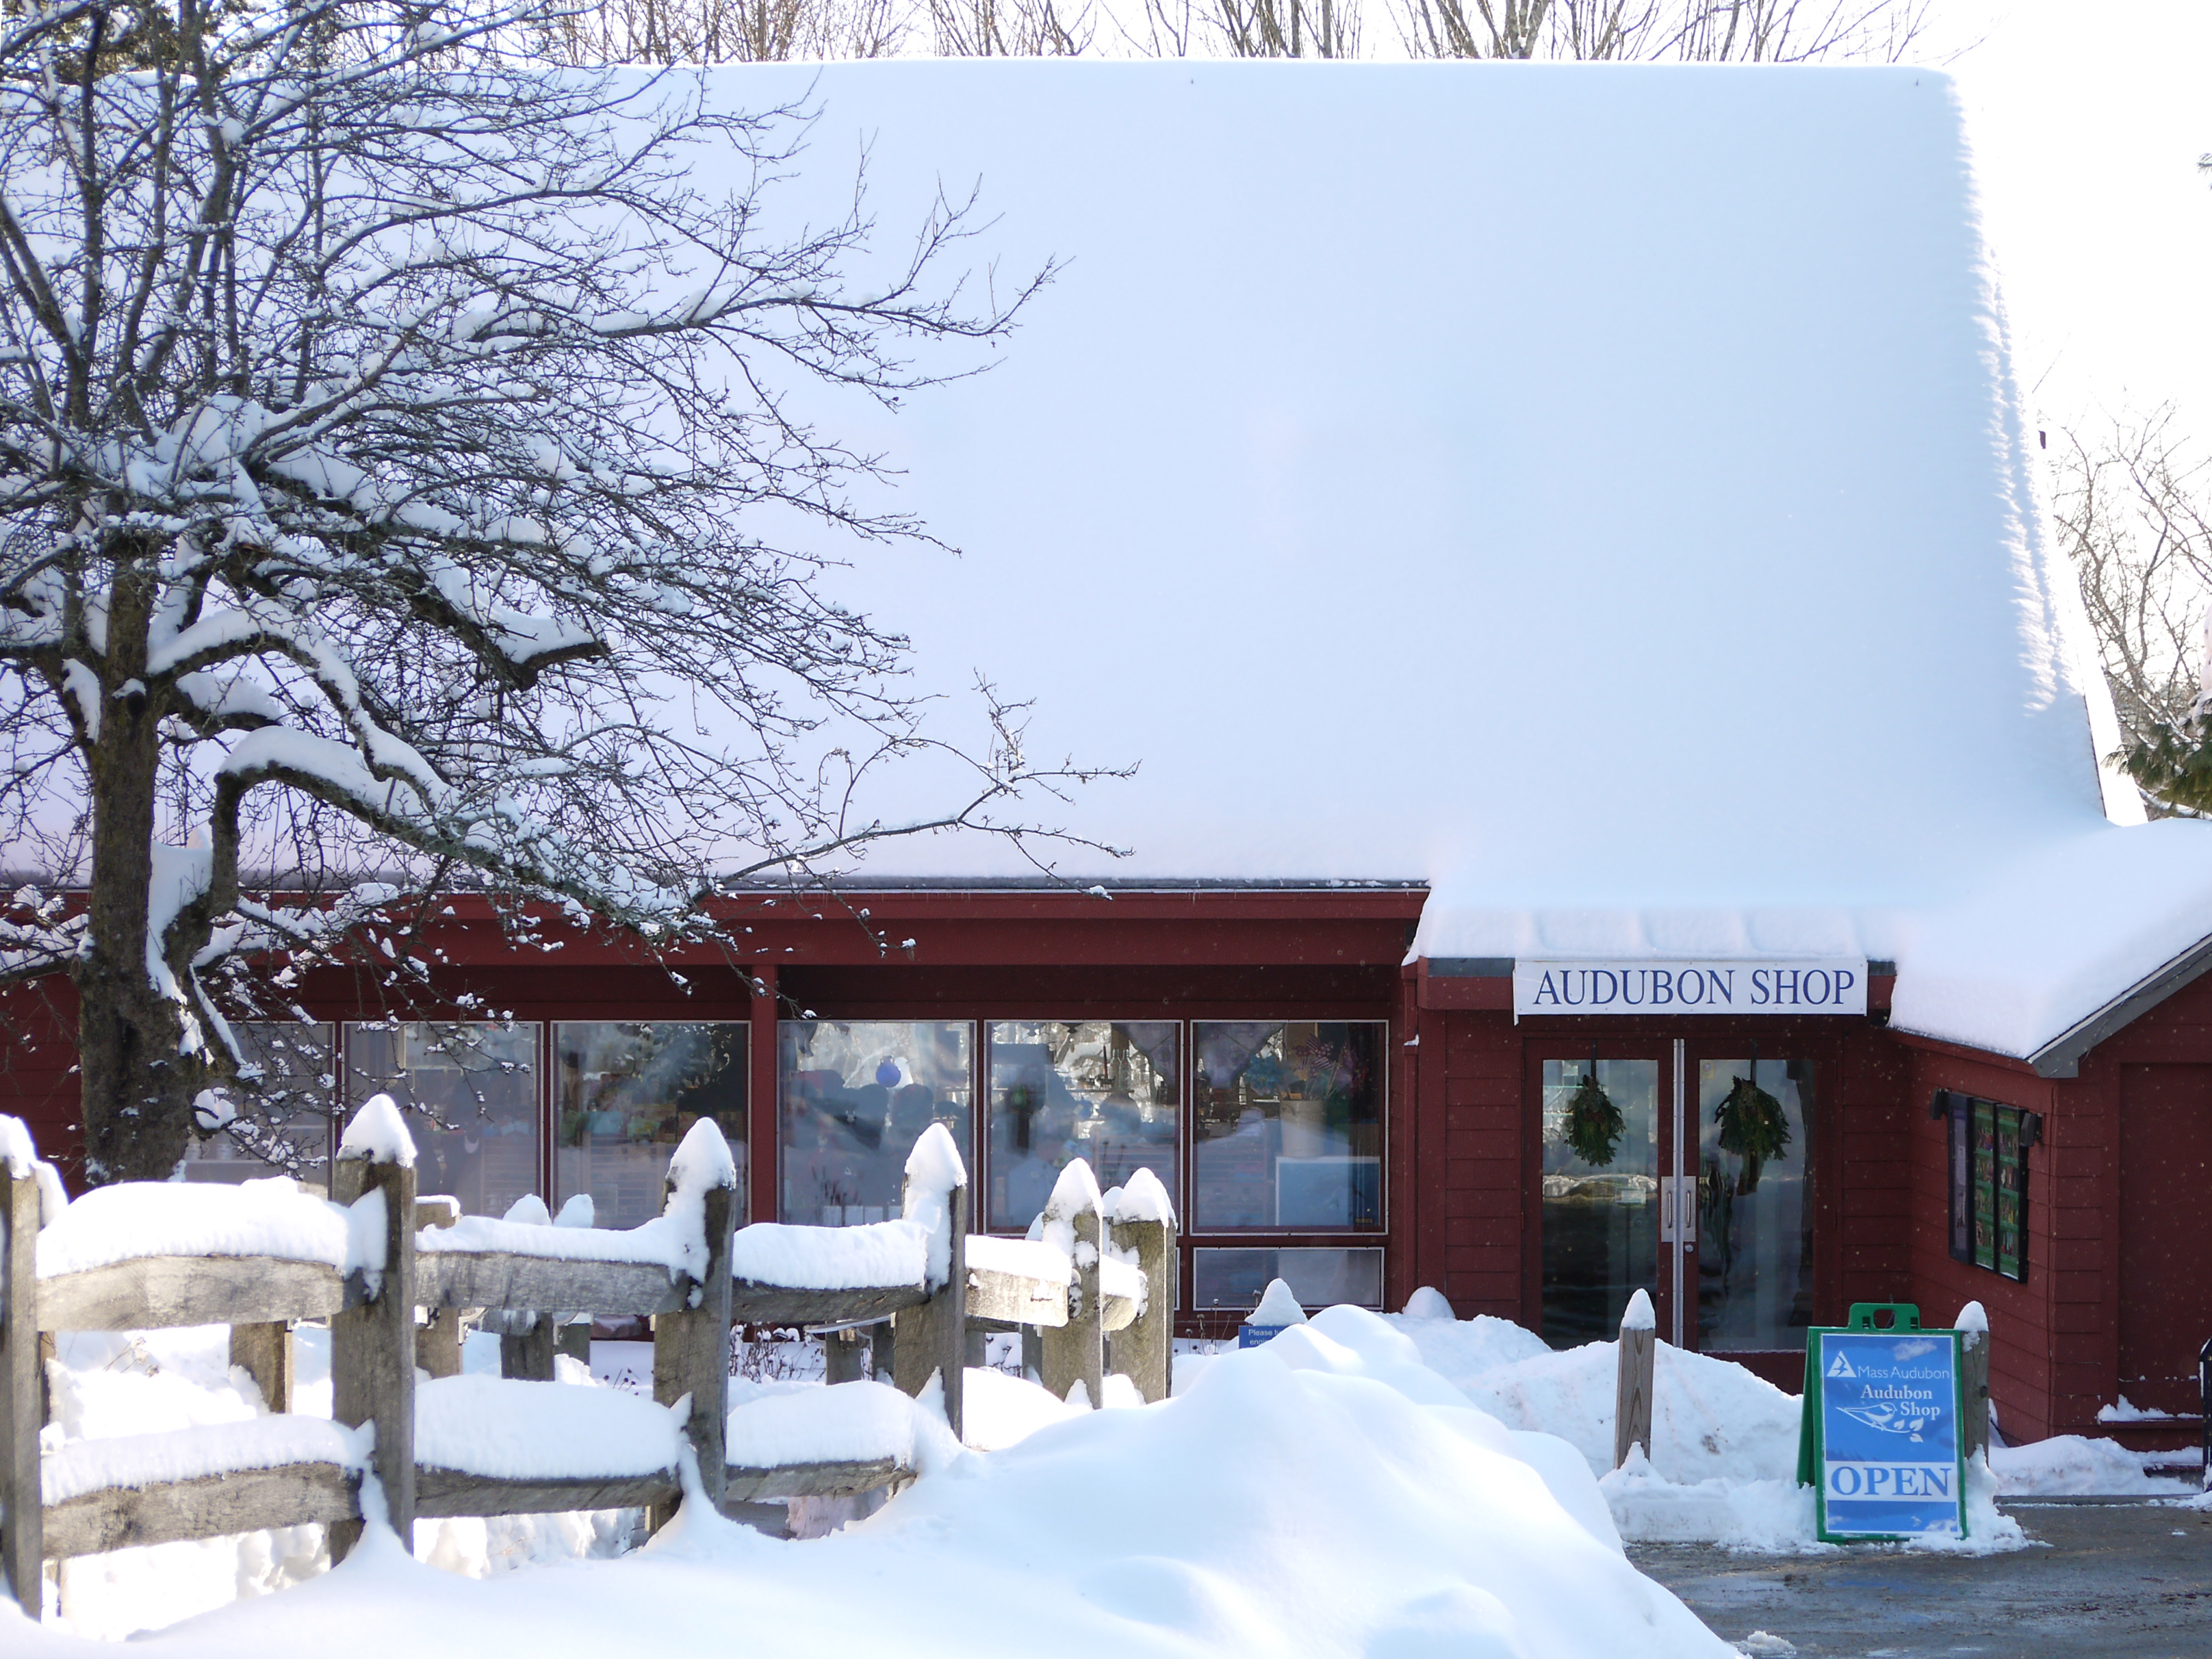 The Mass Audubon Shop at Drumlin Farm in Lincoln, MA, covered in winter snow